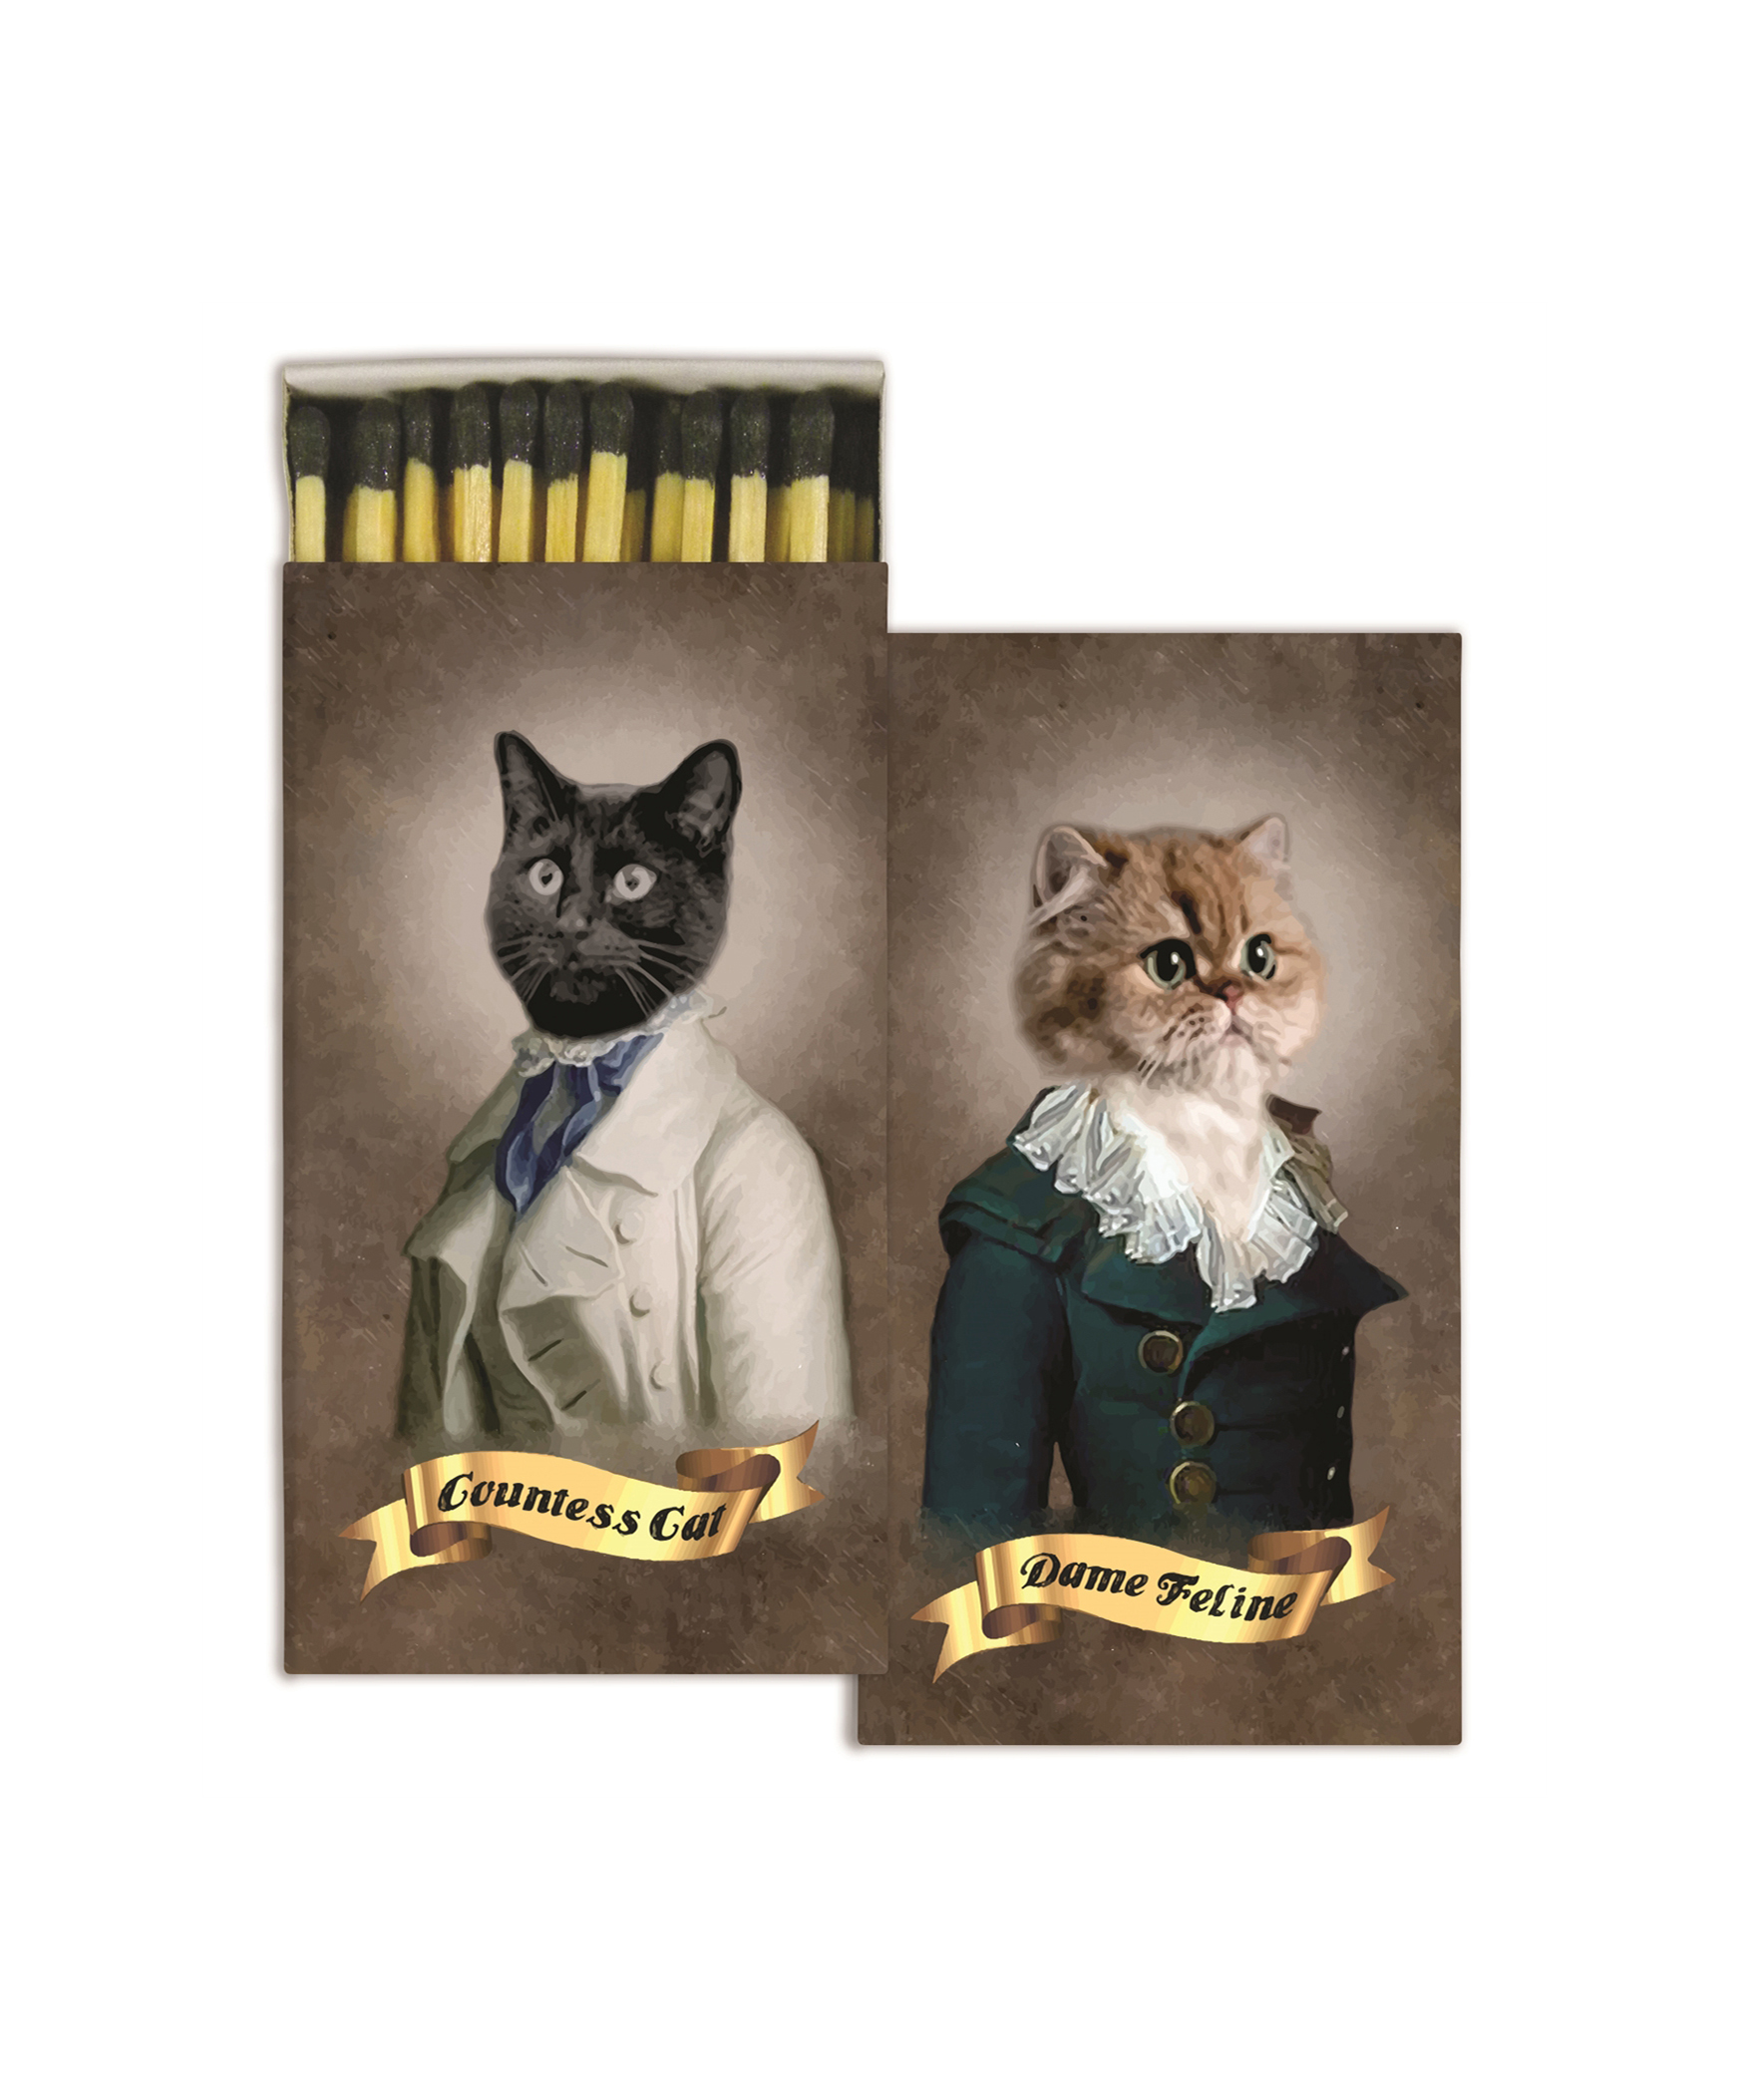 Regal Cat Matches